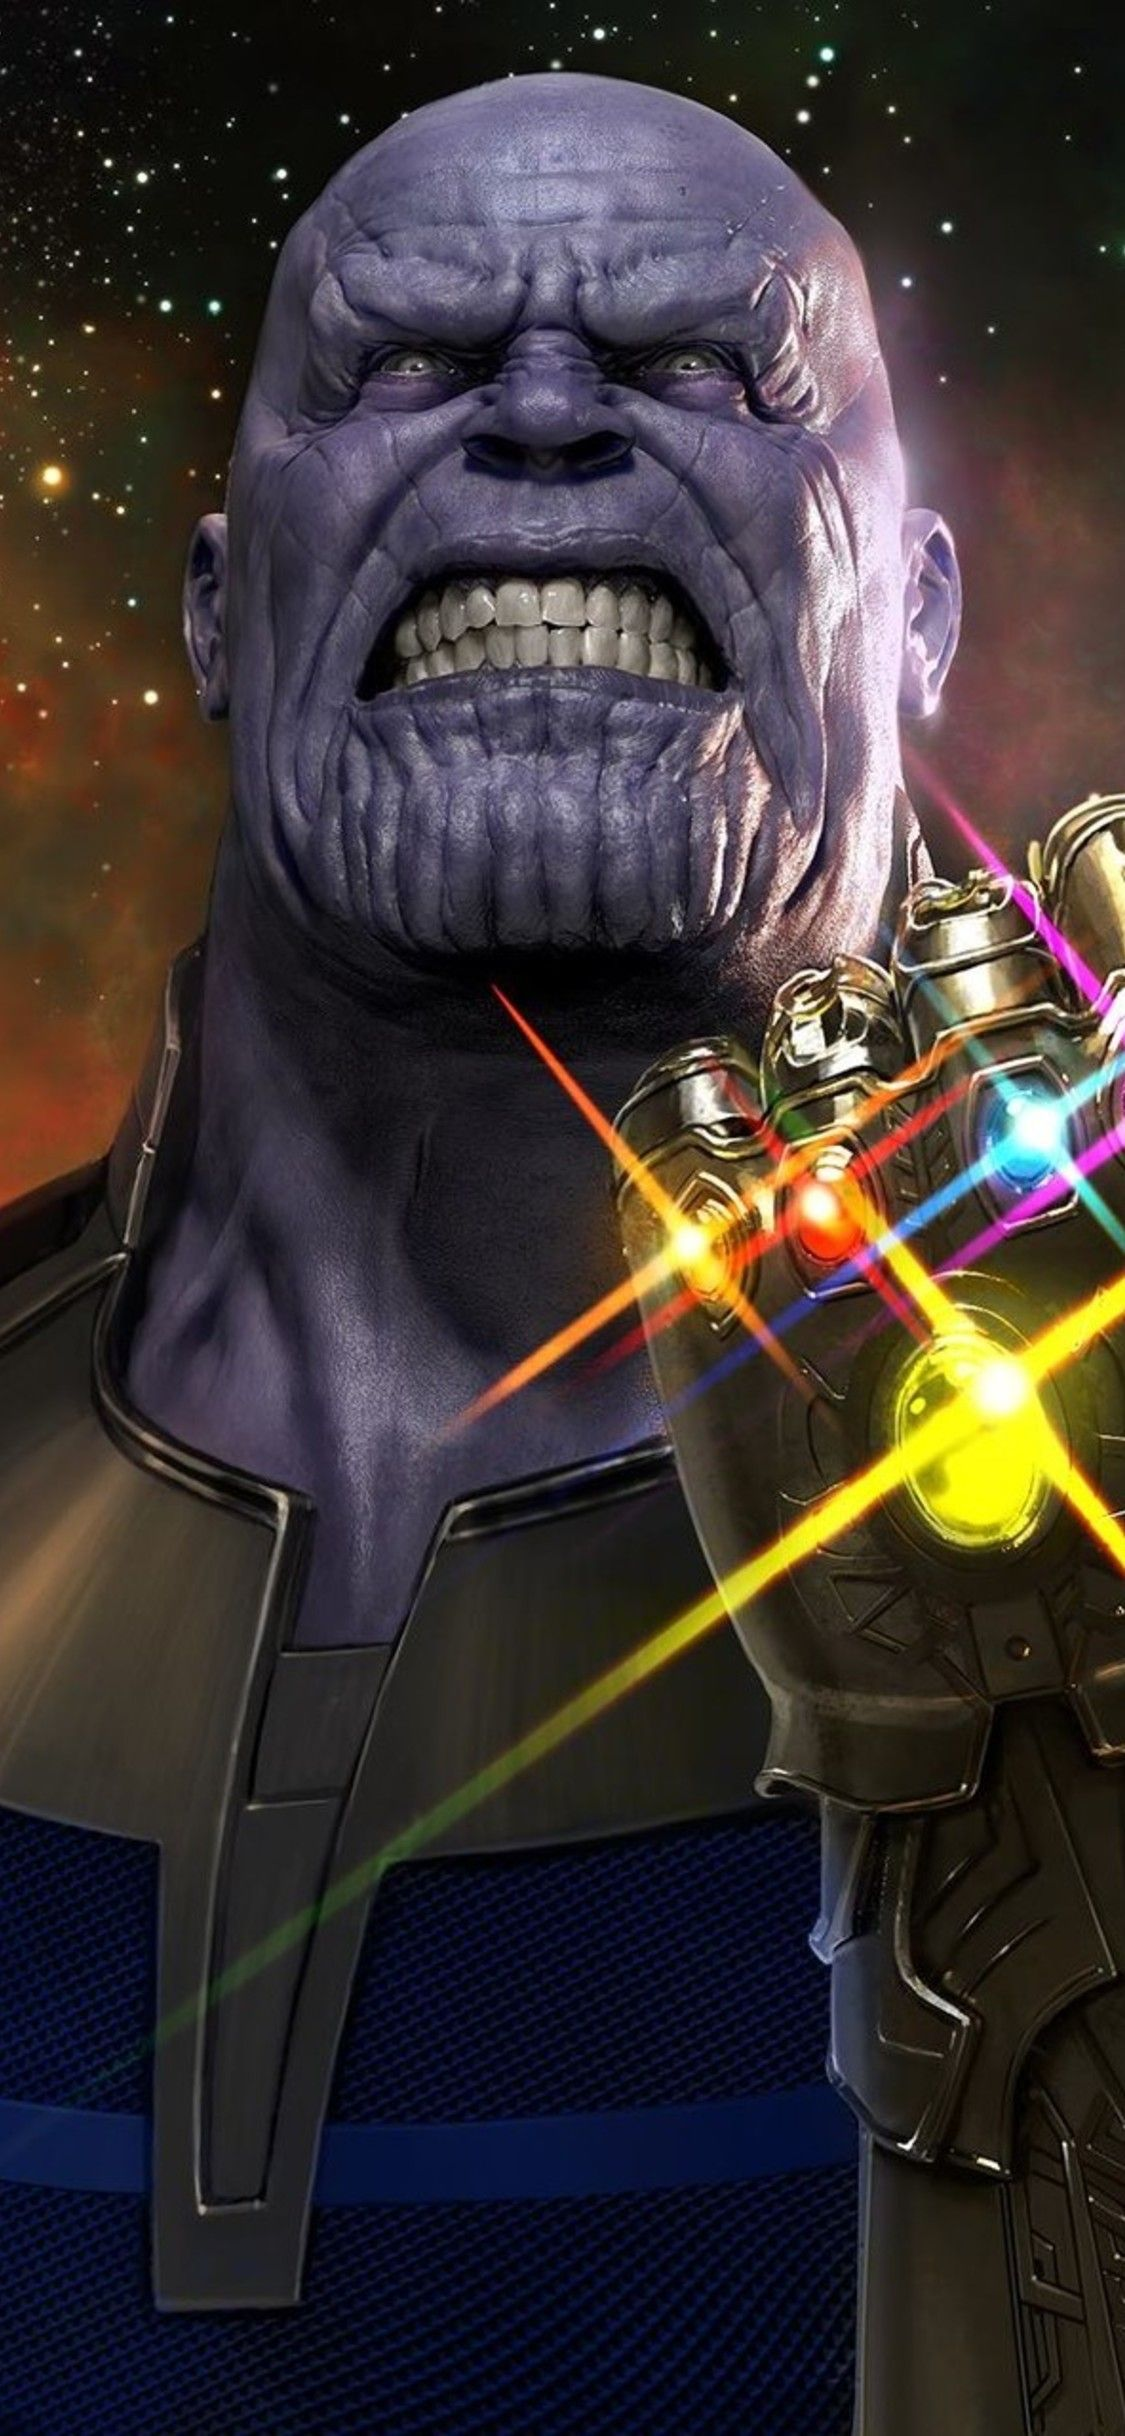 Thanos Iphone Wallpapers Top Free Thanos Iphone